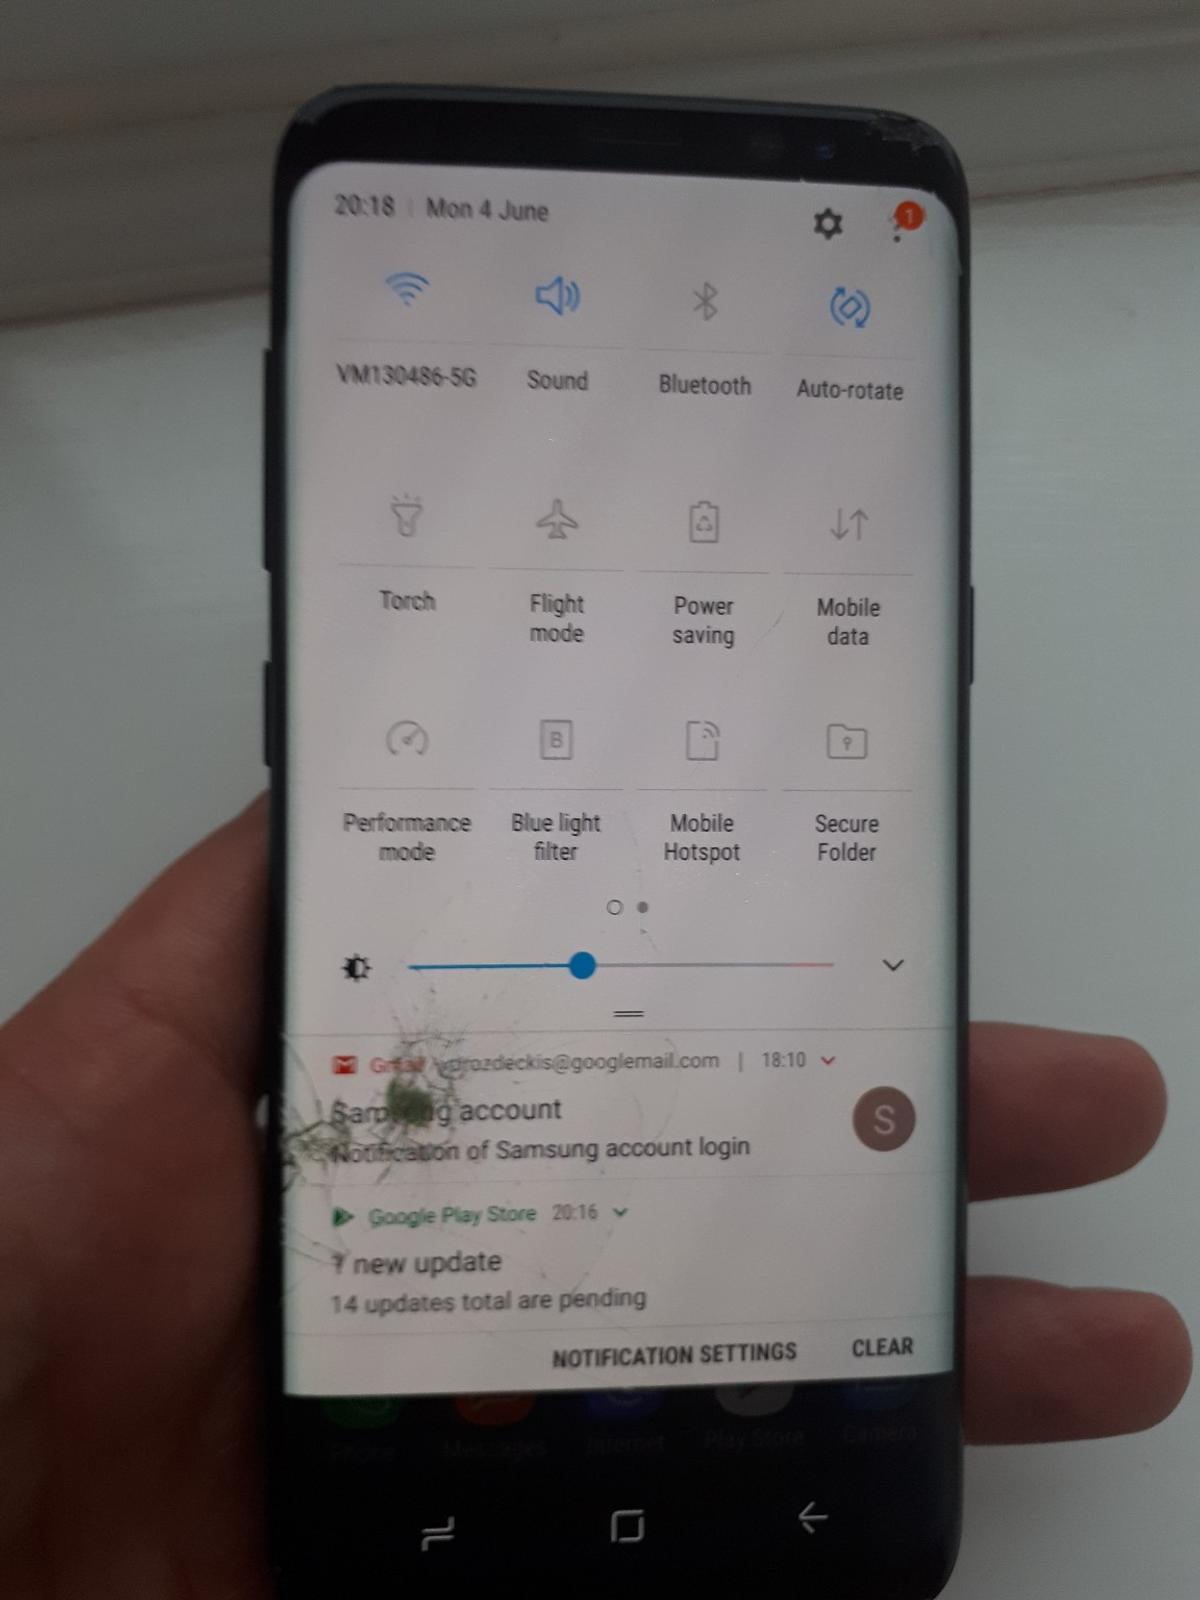 Samsung S8 64gb unlocked in Ковентри for £180 00 for sale